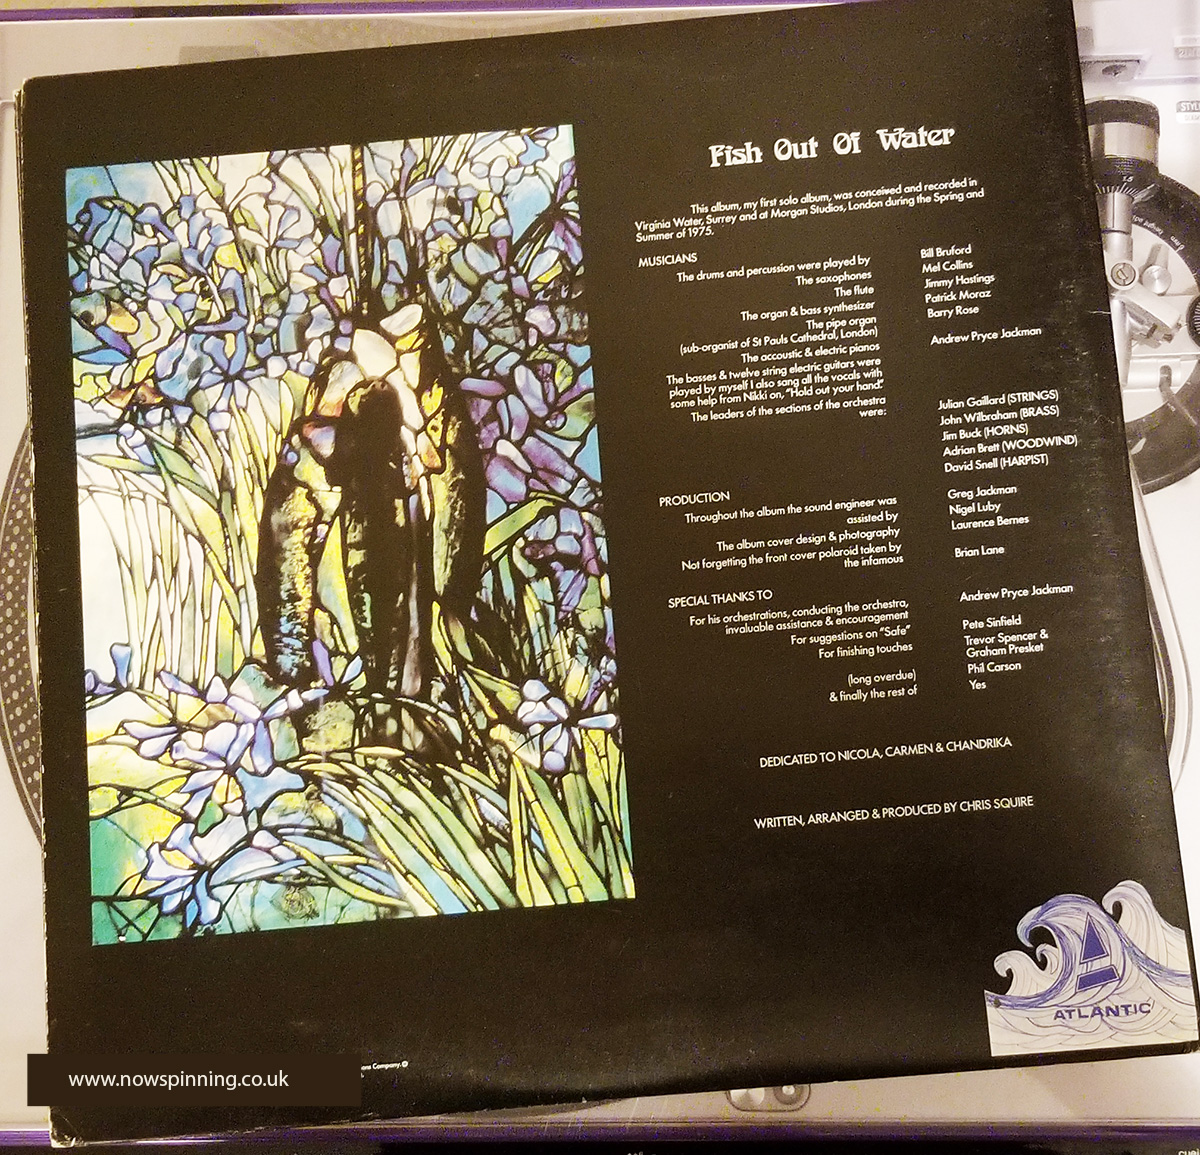 Chris Squire Bass Player with YES - Fish Out of Water back cover